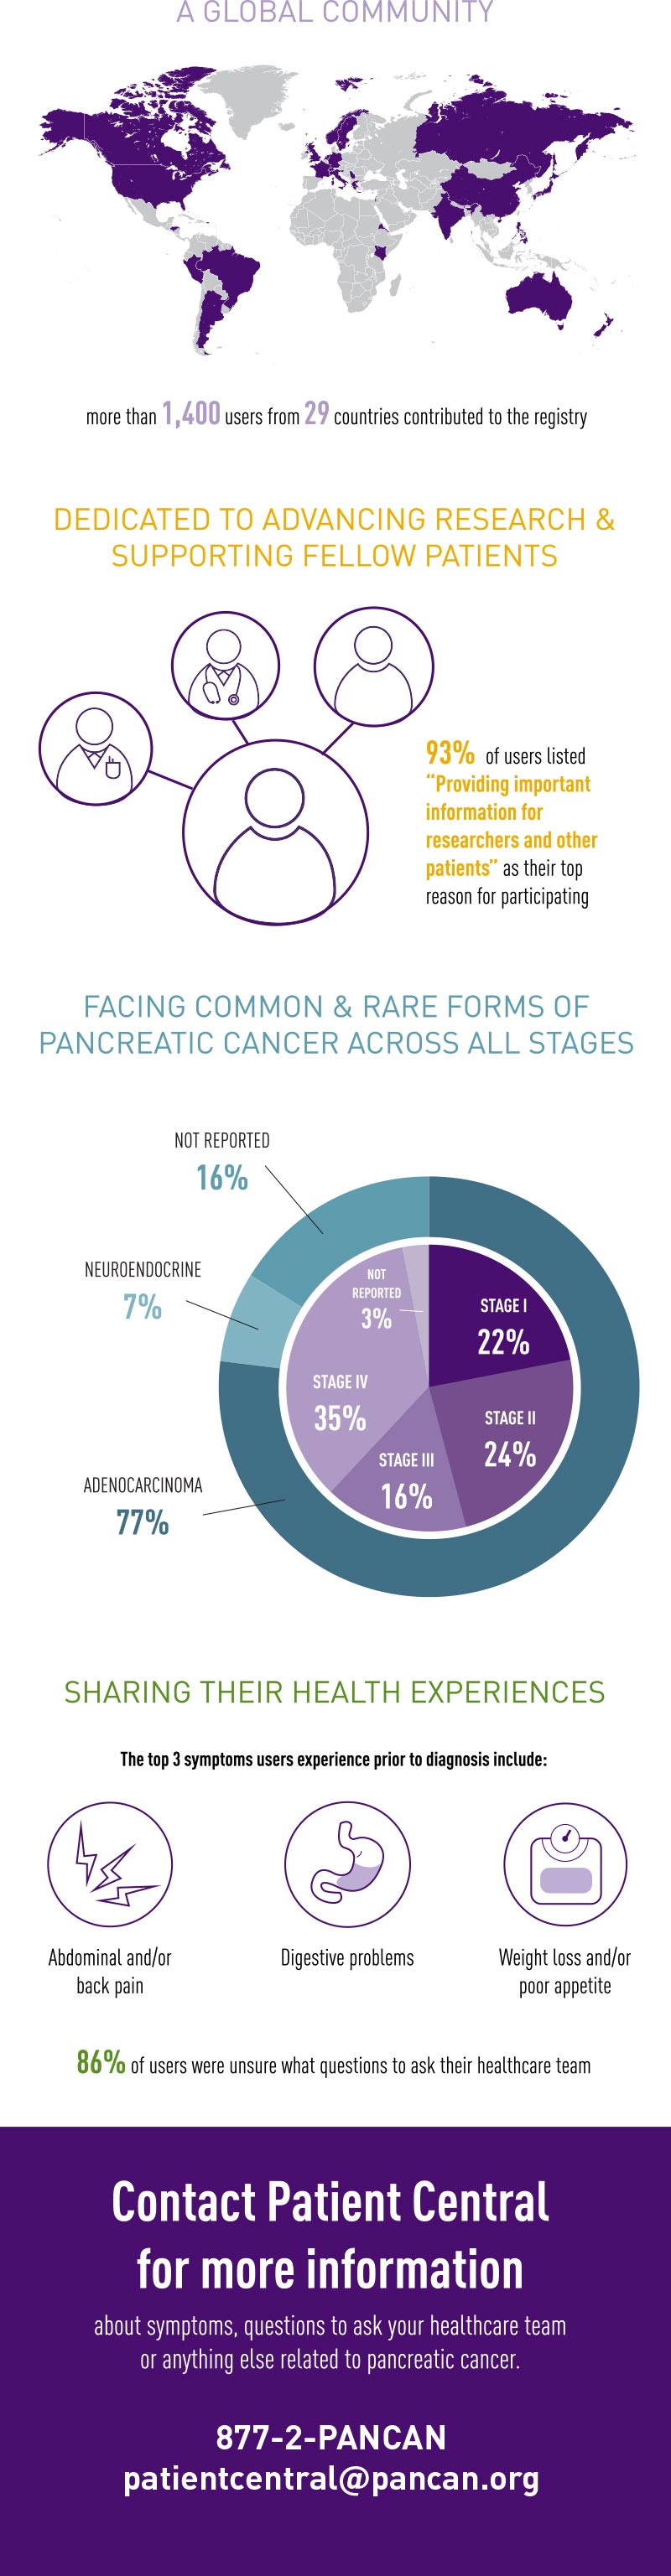 Infographic of pancreatic cancer patient data insights from PanCAN's Patient Registry